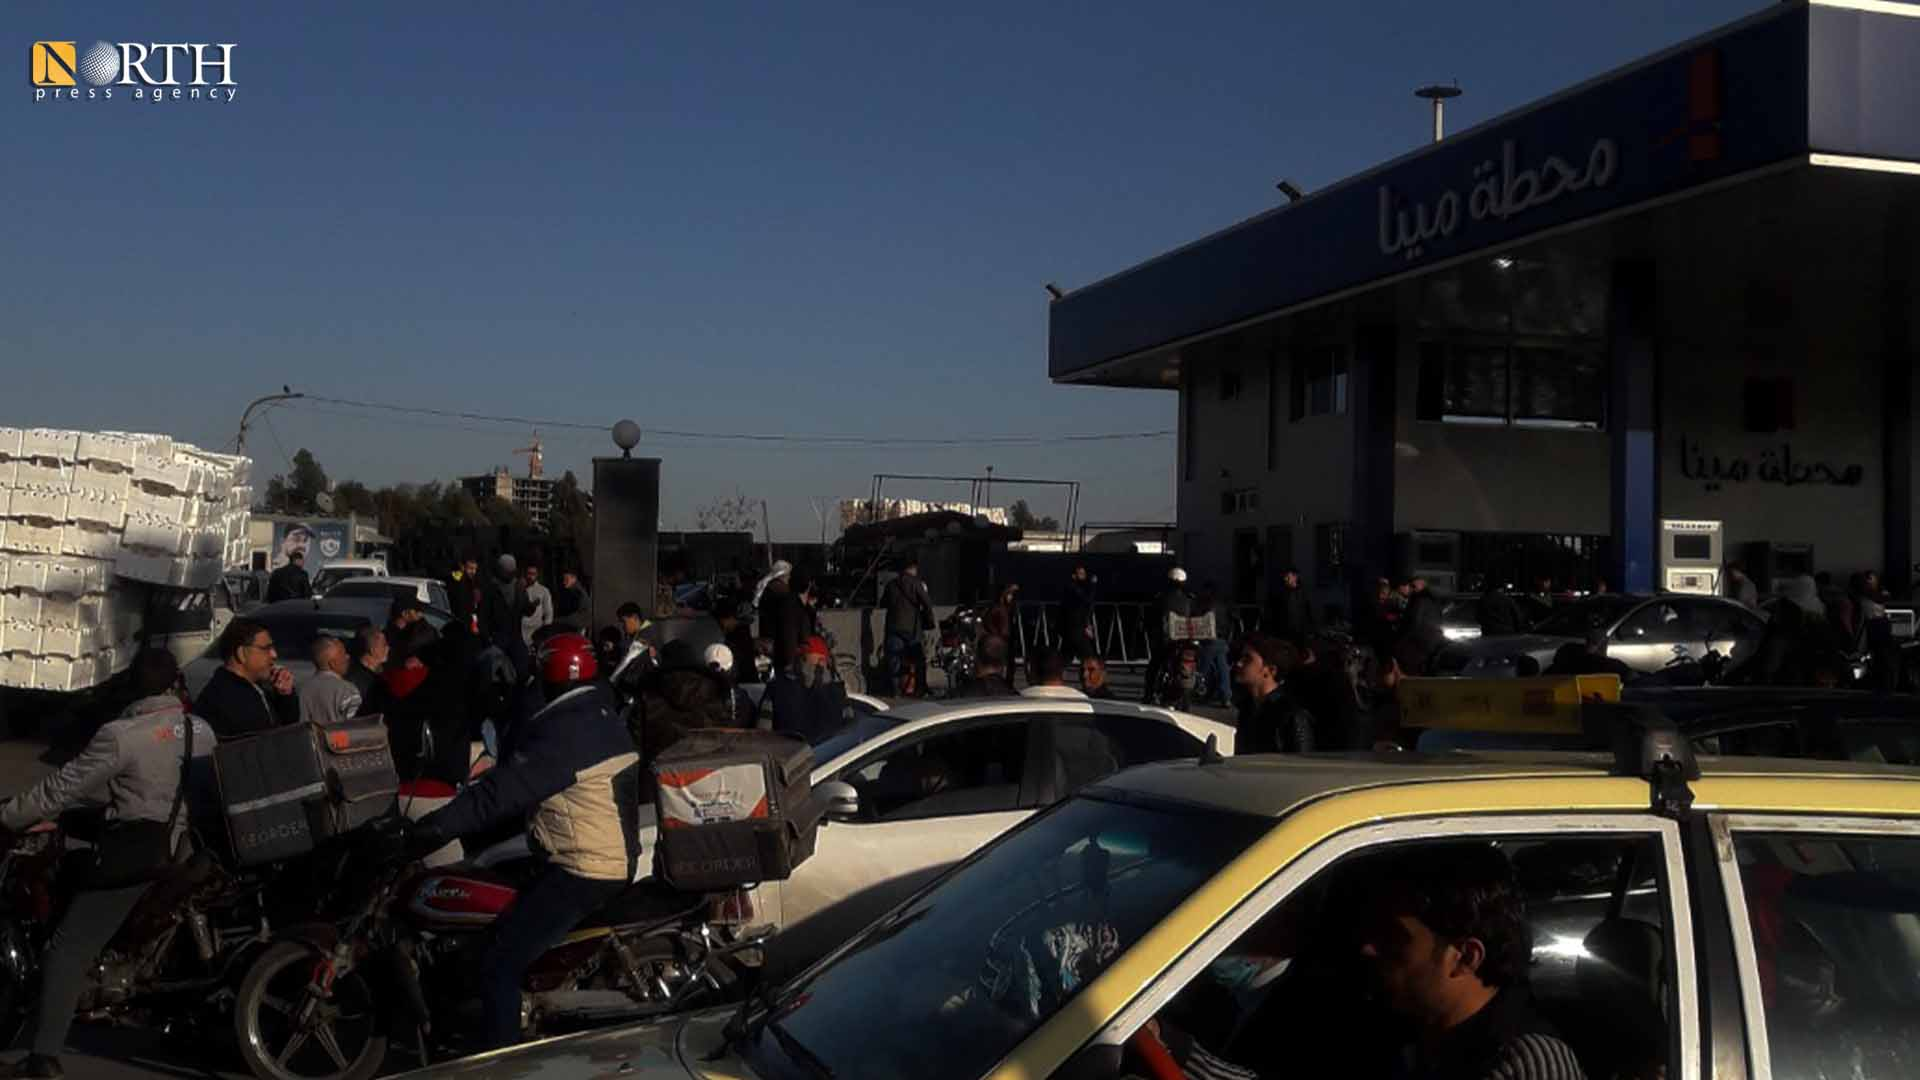 Congestion in front of a gas station in the city of Damascus – North Press